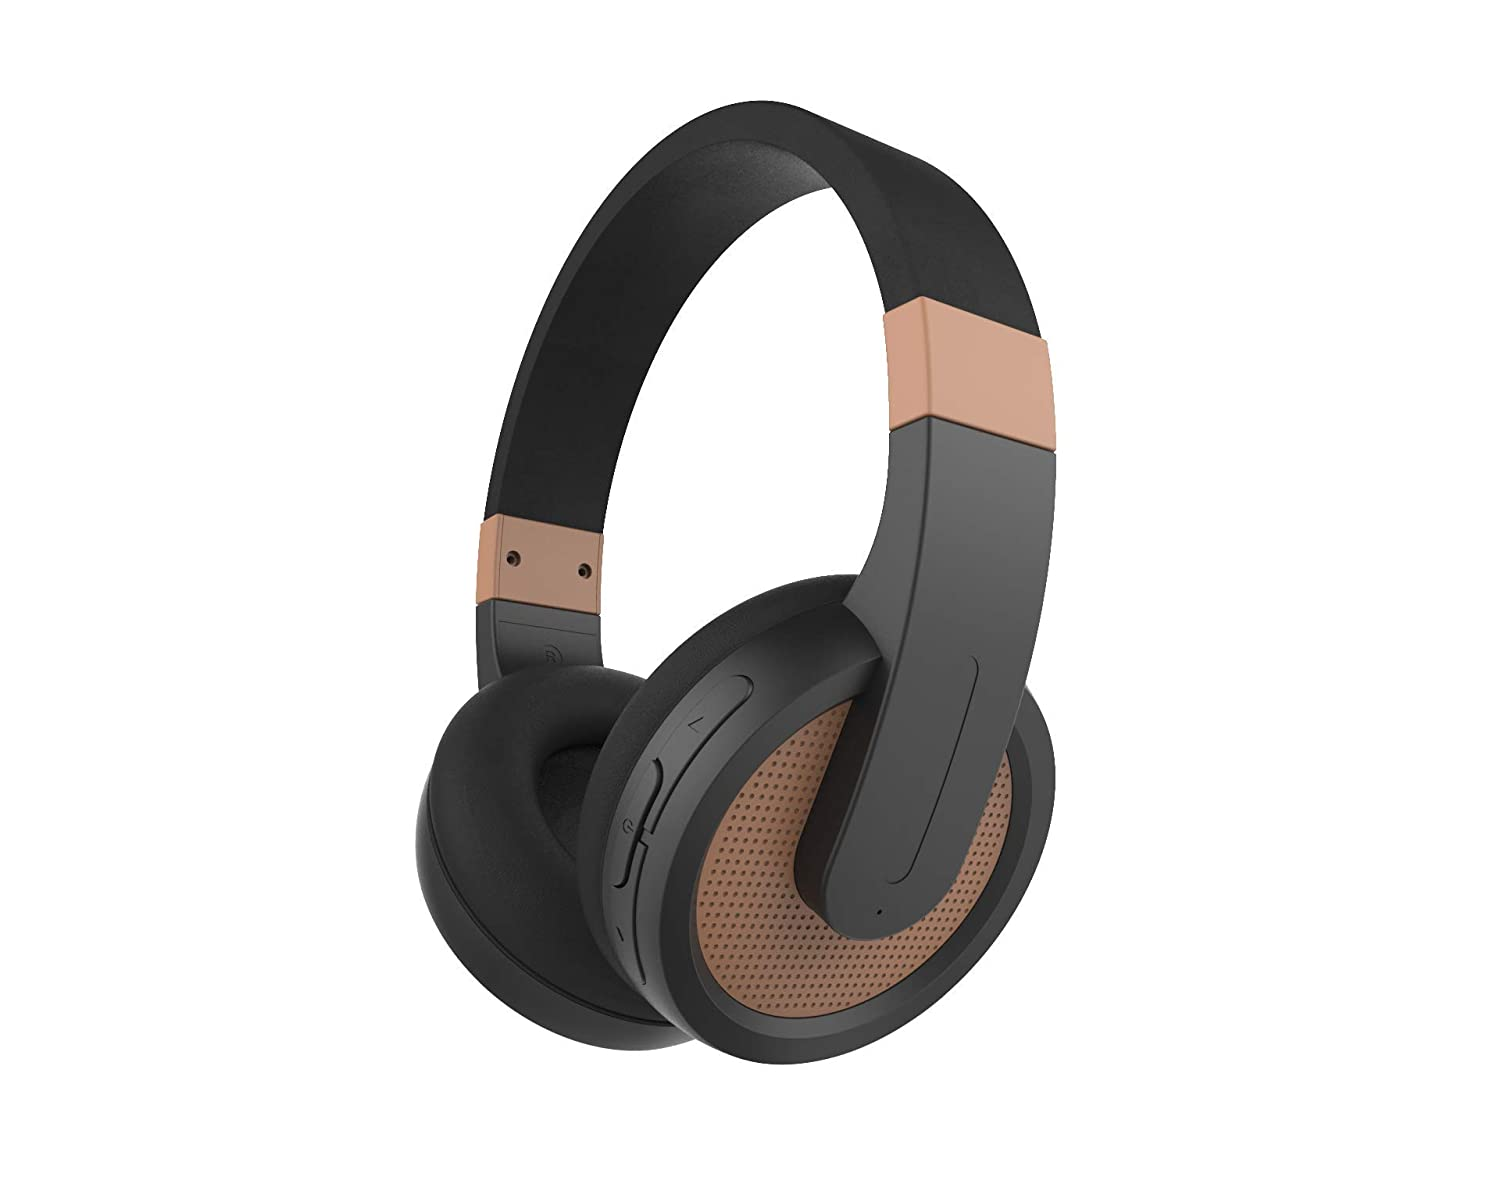 Sylvania SBT274 Bluetooth Stereo Fashionable Gaming Headphones - Supports Bluetooth 4.2 and A2DP - Built-in Microphone - Side-Mounted Controls (Copper)